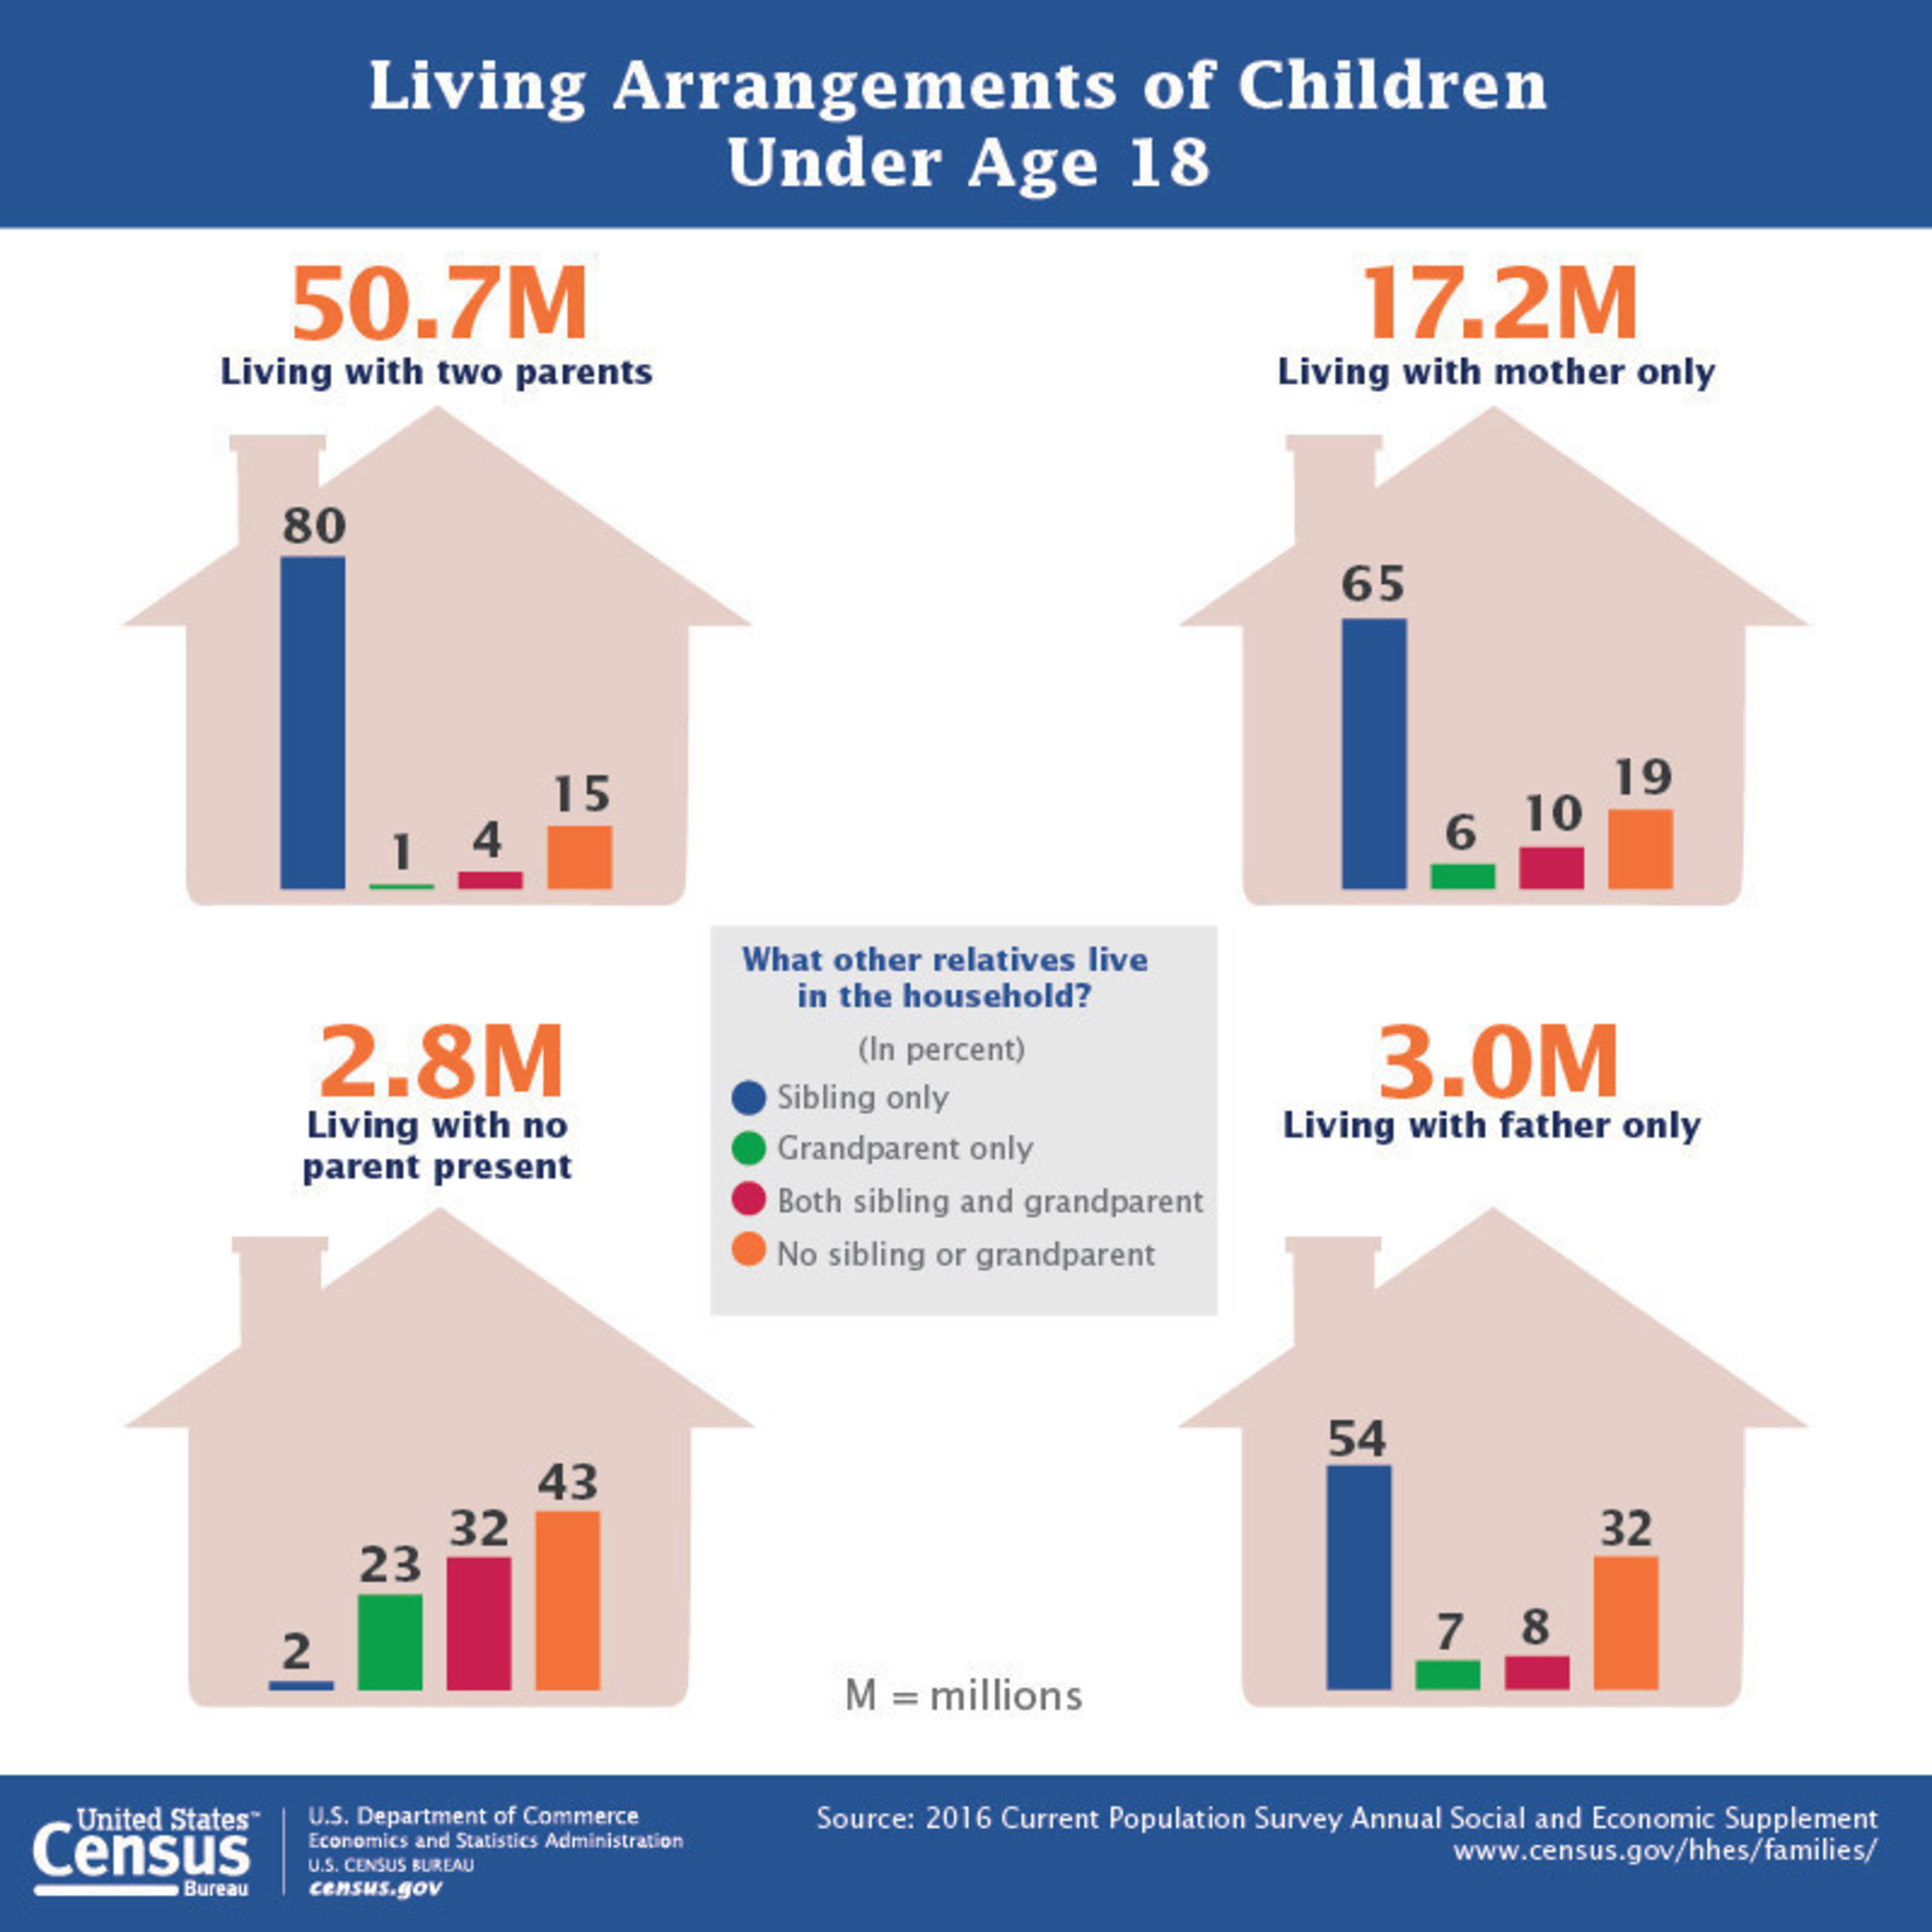 The majority of America's 73.7 million children under age 18 live in families with two parents (69 percent), according to new statistics released today from the U.S. Census Bureau. This is compared to other types of living arrangements, such as living with grandparents or having a single parent.